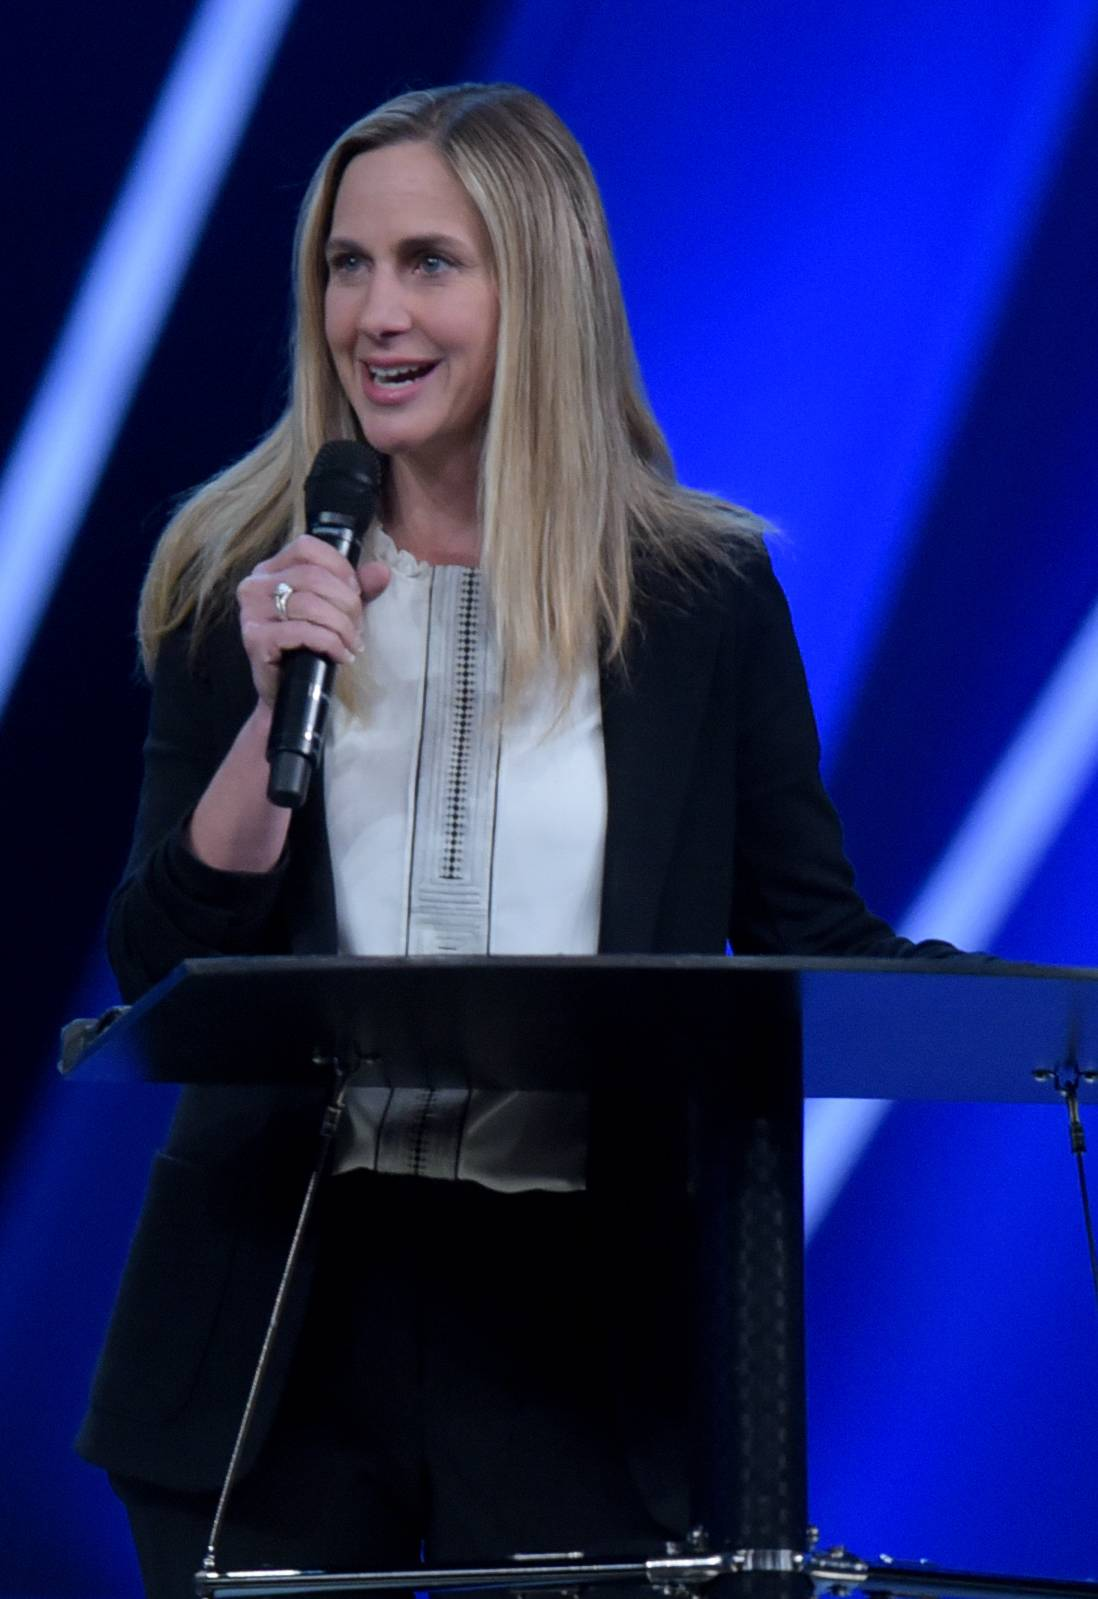 Longtime Willow Creek staff member Heather Larson is taking over as senior pastor after church founder Bill Hybels announced Tuesday he is stepping down.